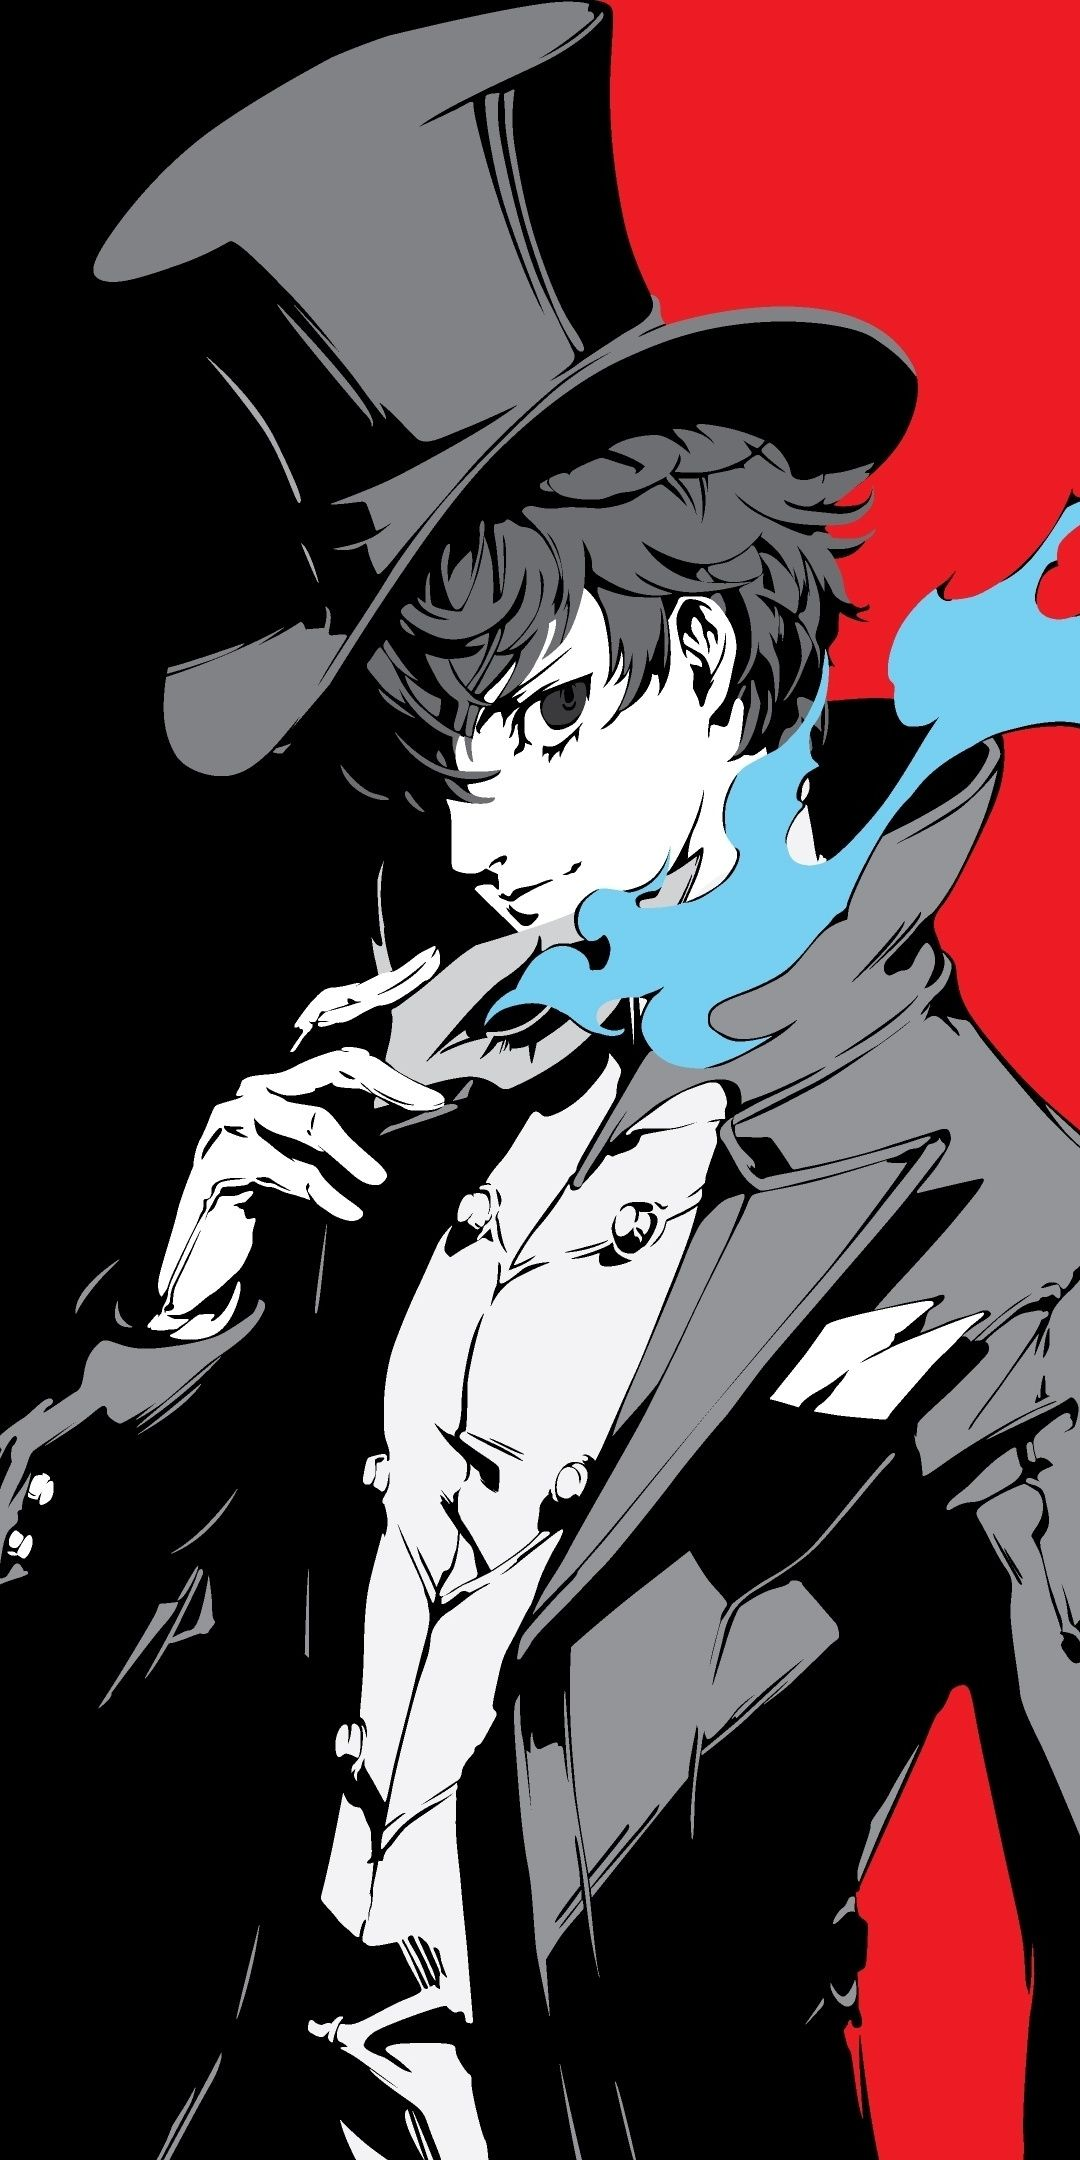 Joker, Persona 5, video game, 1080x2160 wallpaper (With